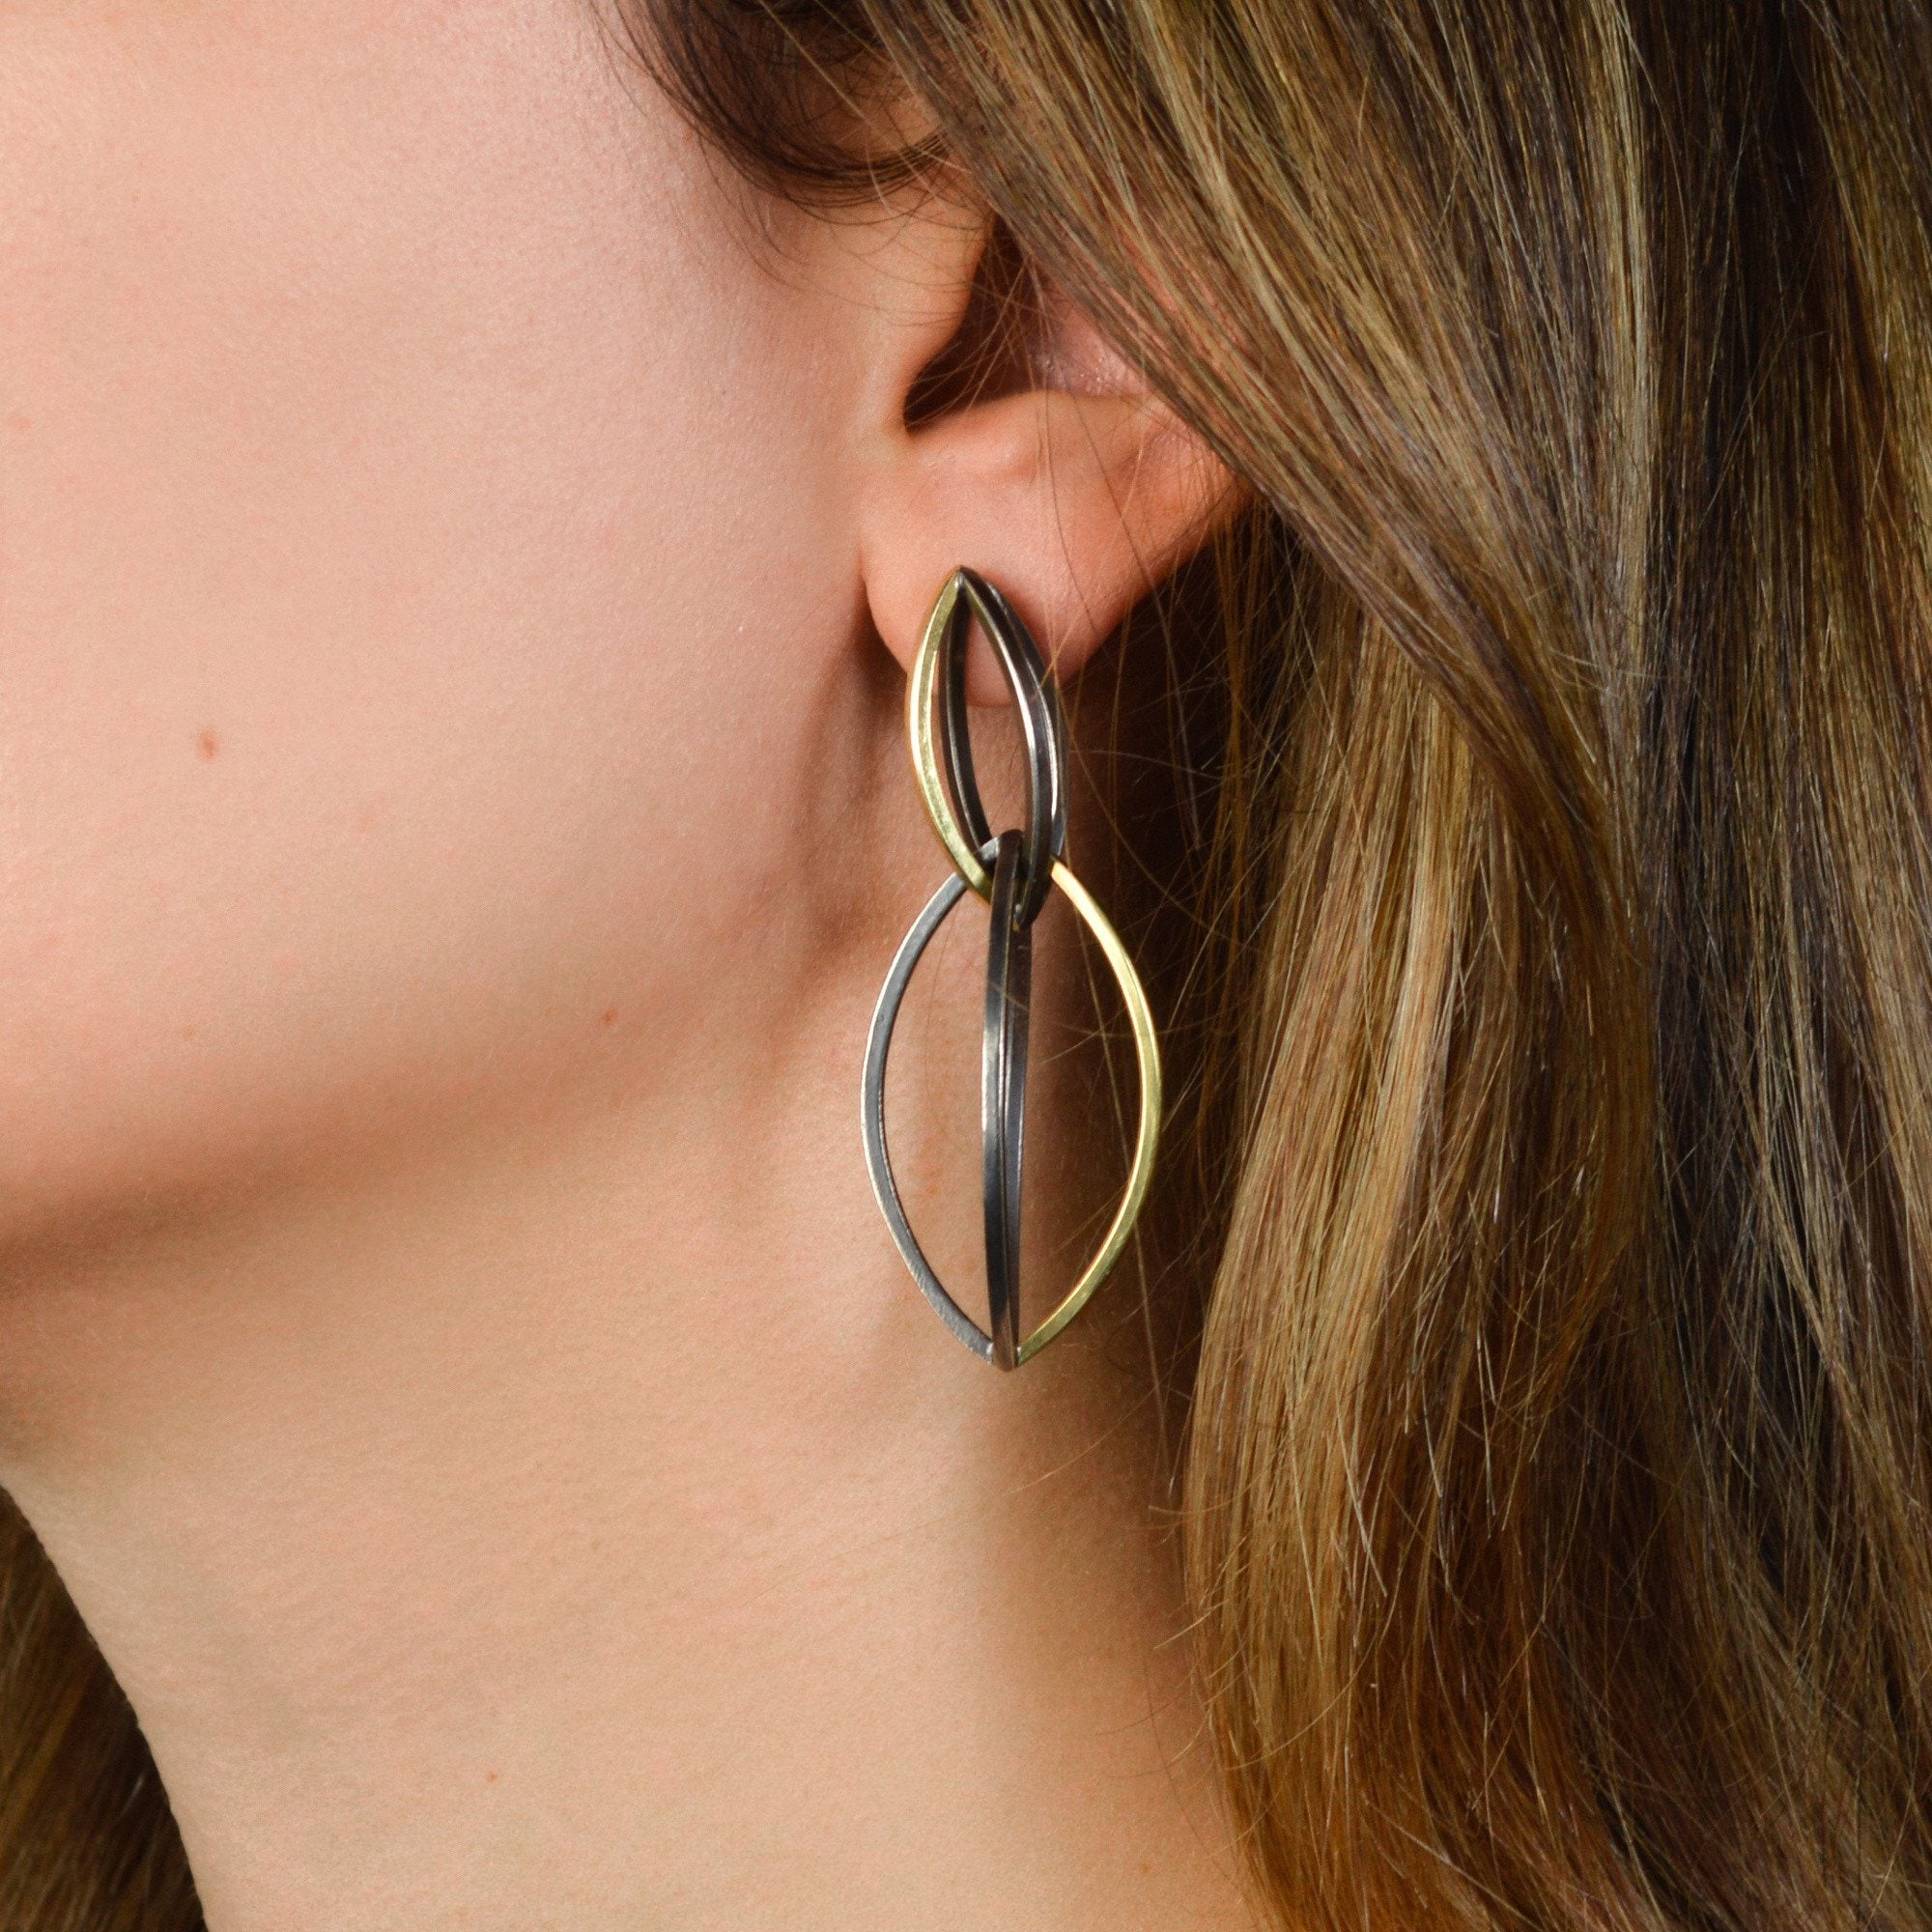 Swell Earrings in 18k Gold and blackened Sterling Silver